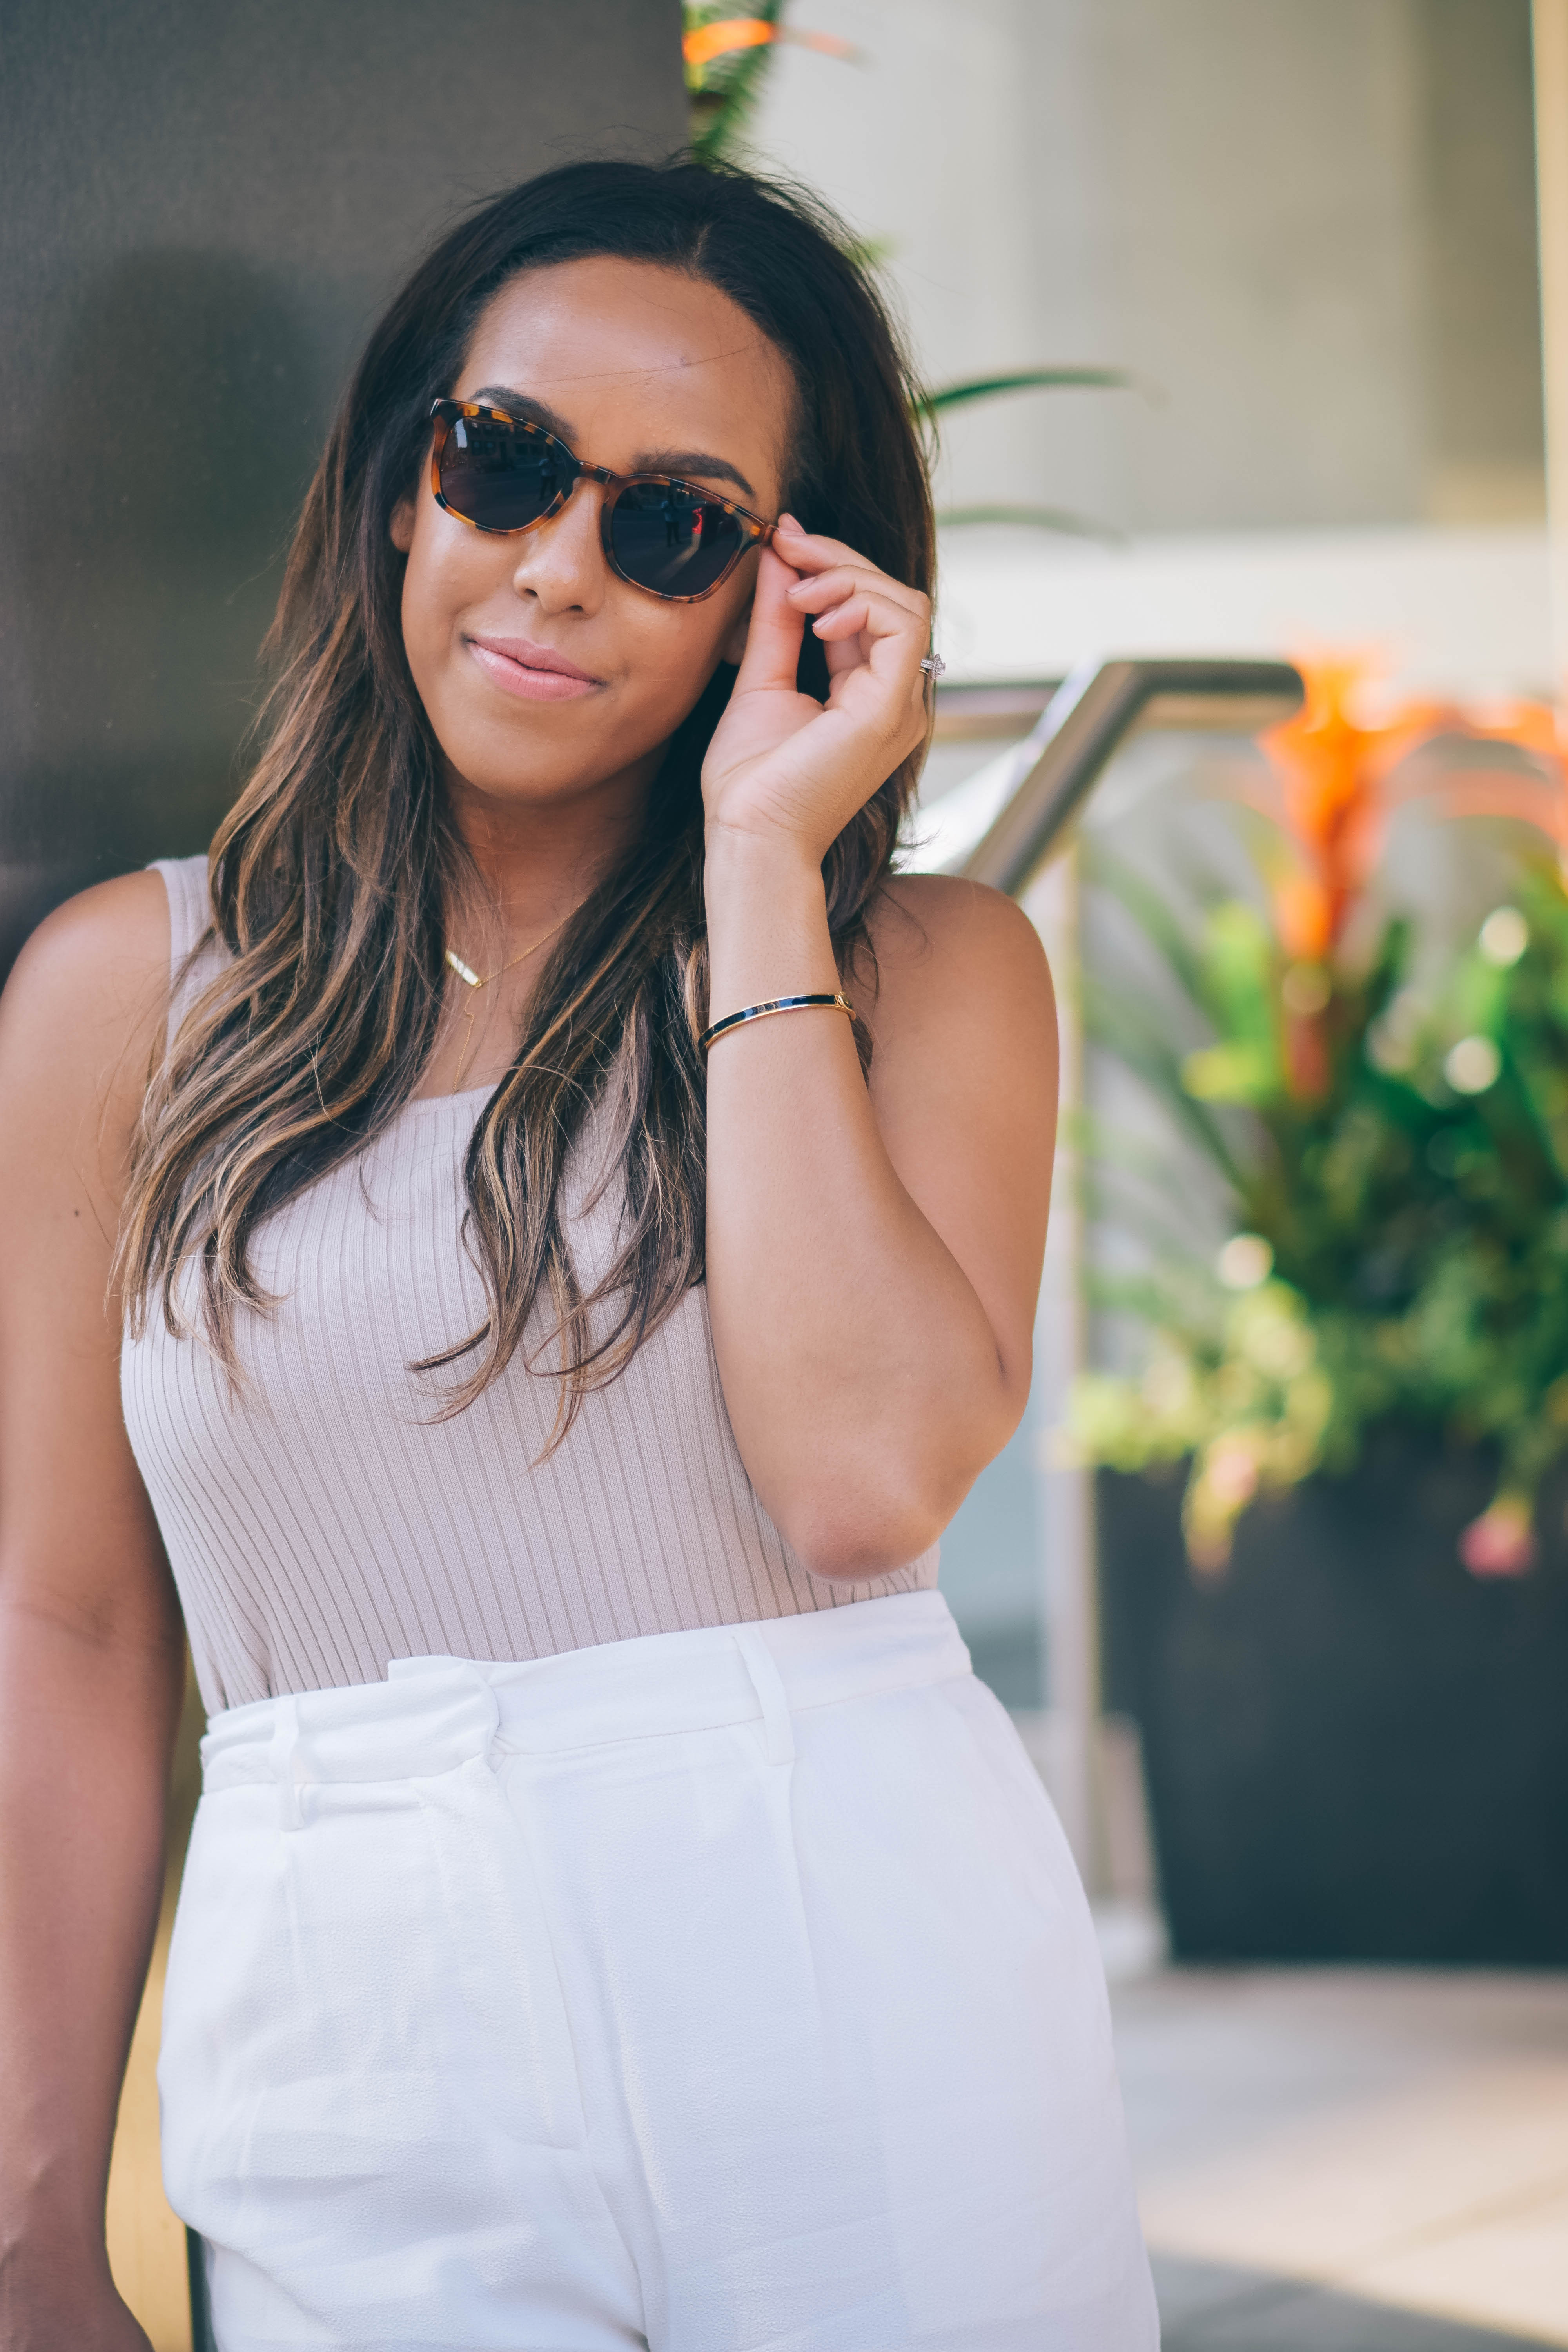 Fashion Blogger Lauren Sheriff in Made Eyewear Sunglasses and Mendocino